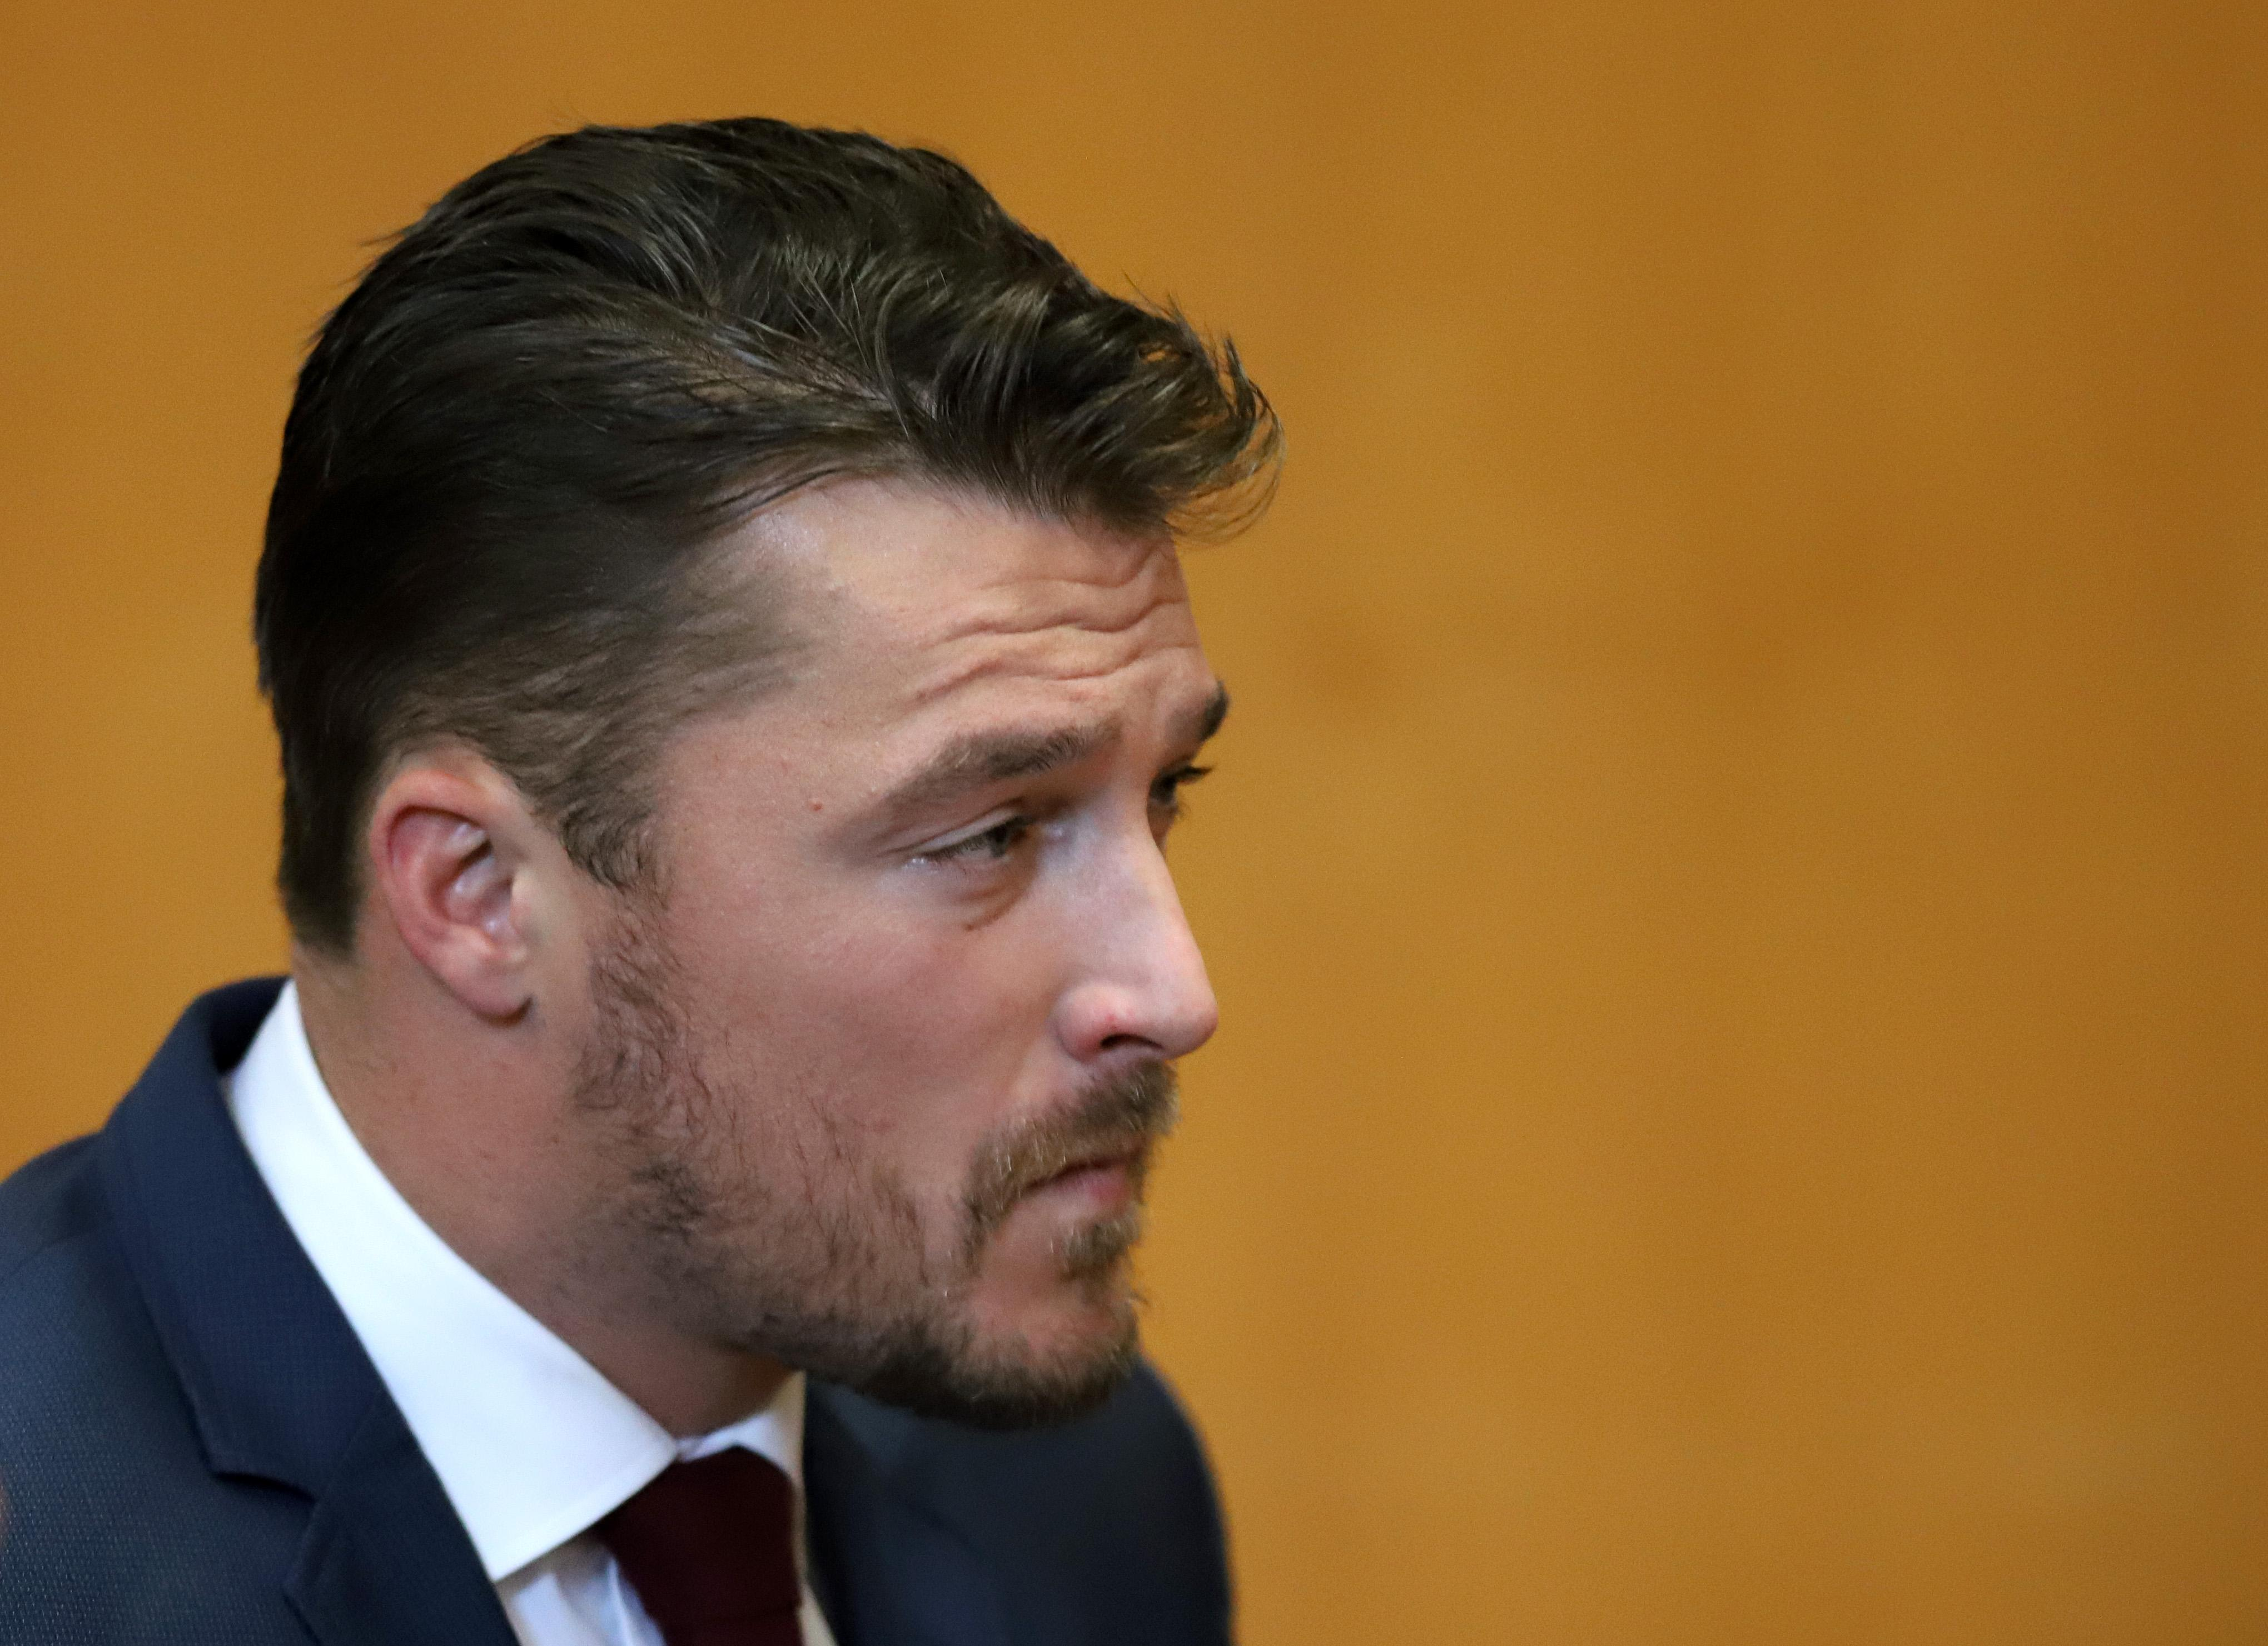 Chris Soules appears for a hearing in Buchanan County District Court with his lawyer Robert Montgomery Thursday, Sept. 14, 2017, in Independence, Iowa. Reality TV star Soules is charged with leaving the scene in a fatal April crash near Aurora, Iowa. (MATTHEW PUTNEY, The Courier /POOL)